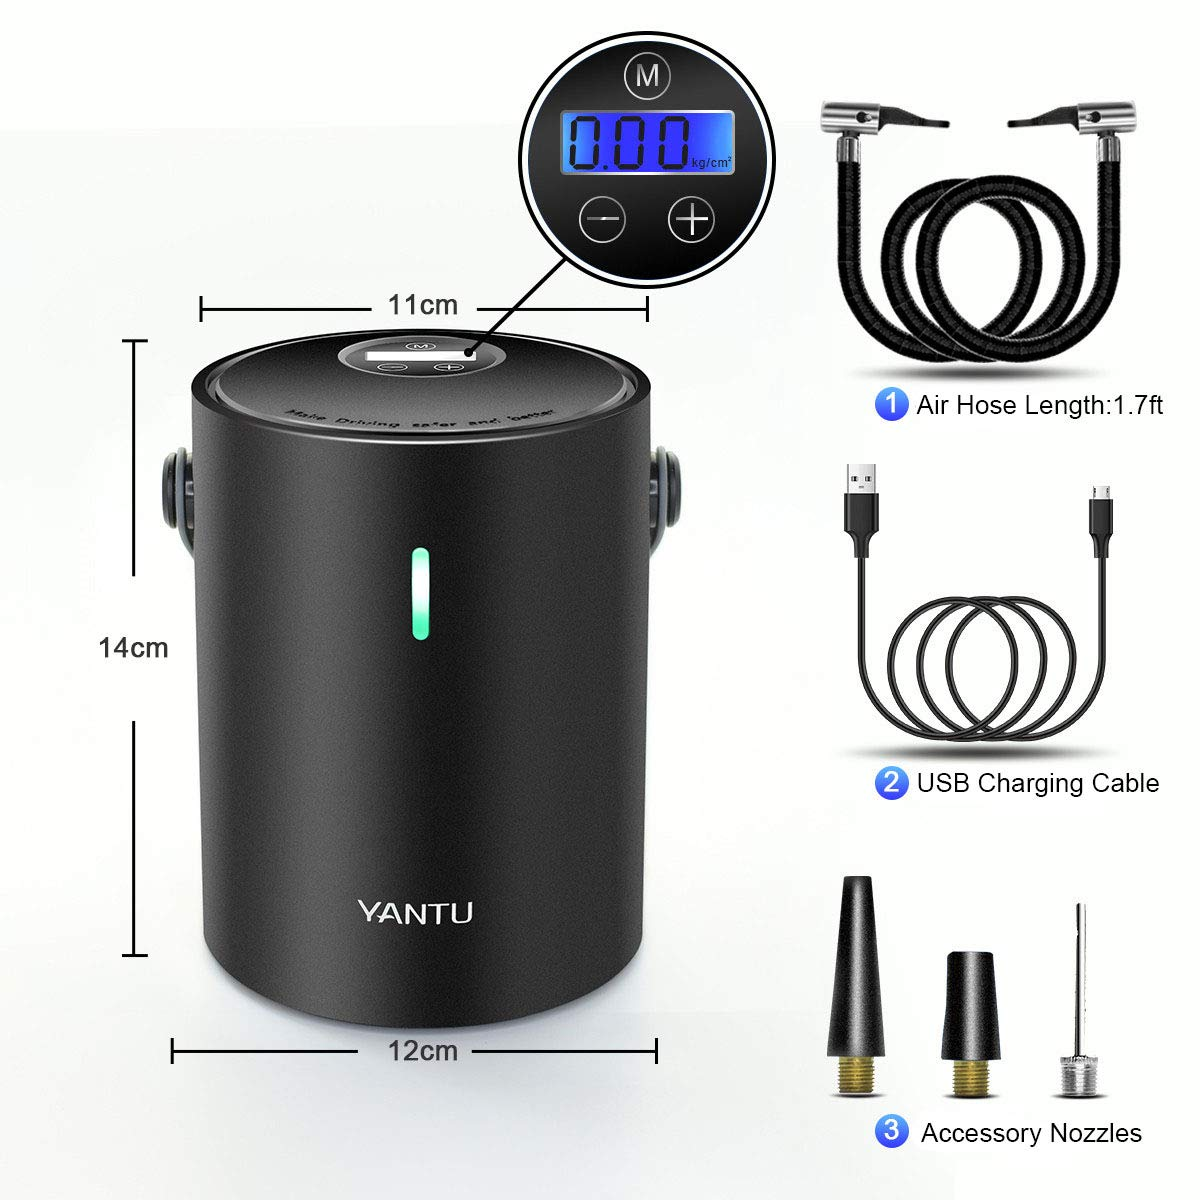 Yantu Portable Tire Inflator for Car,12V DC Wireless Air Compressor Pump with Digital Pressure Gauge Auto Shut Off USB Rechargeable 3 Different Chucks Fast n Stable Inflation (Black)